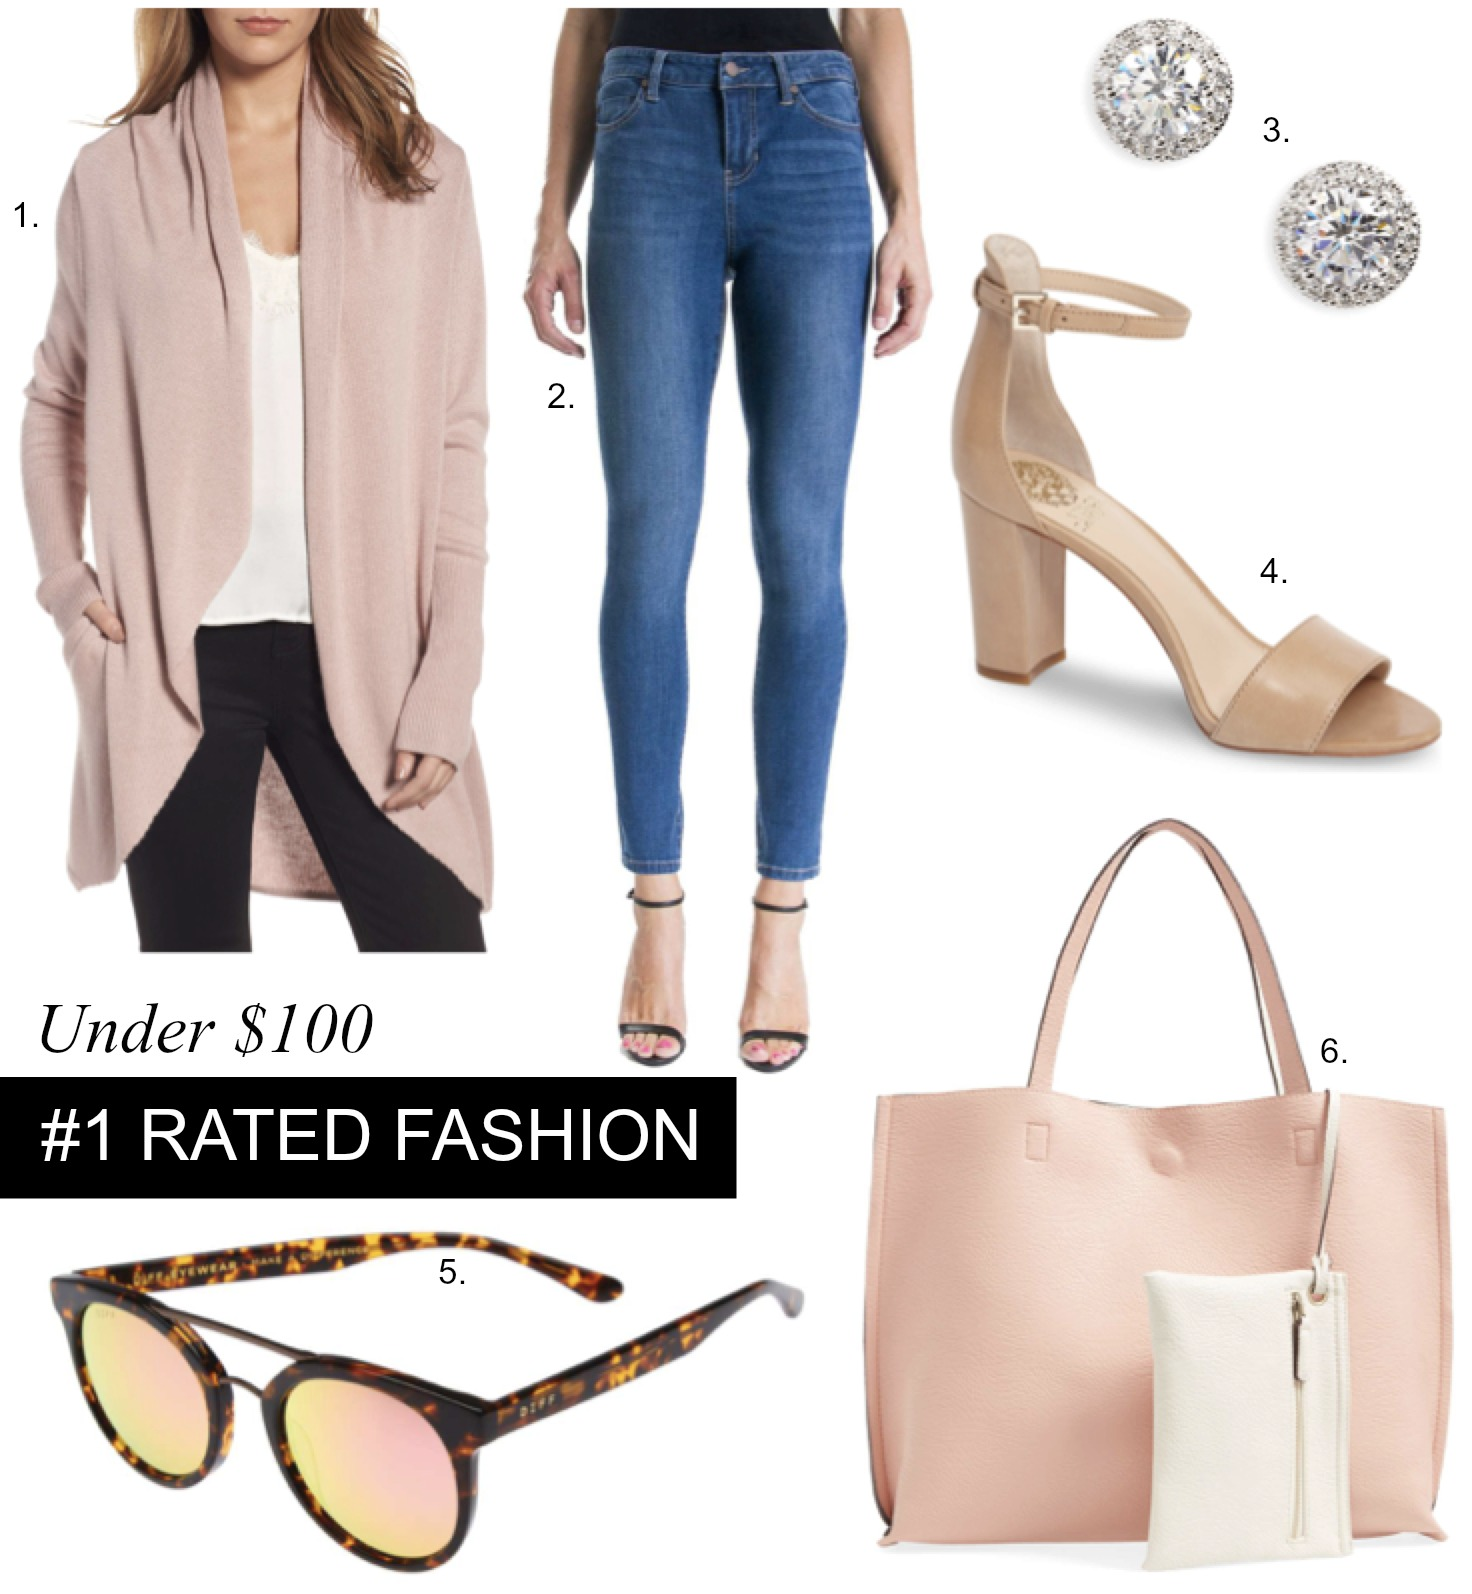 Nordstrom's Top Rated Fashion Under $100